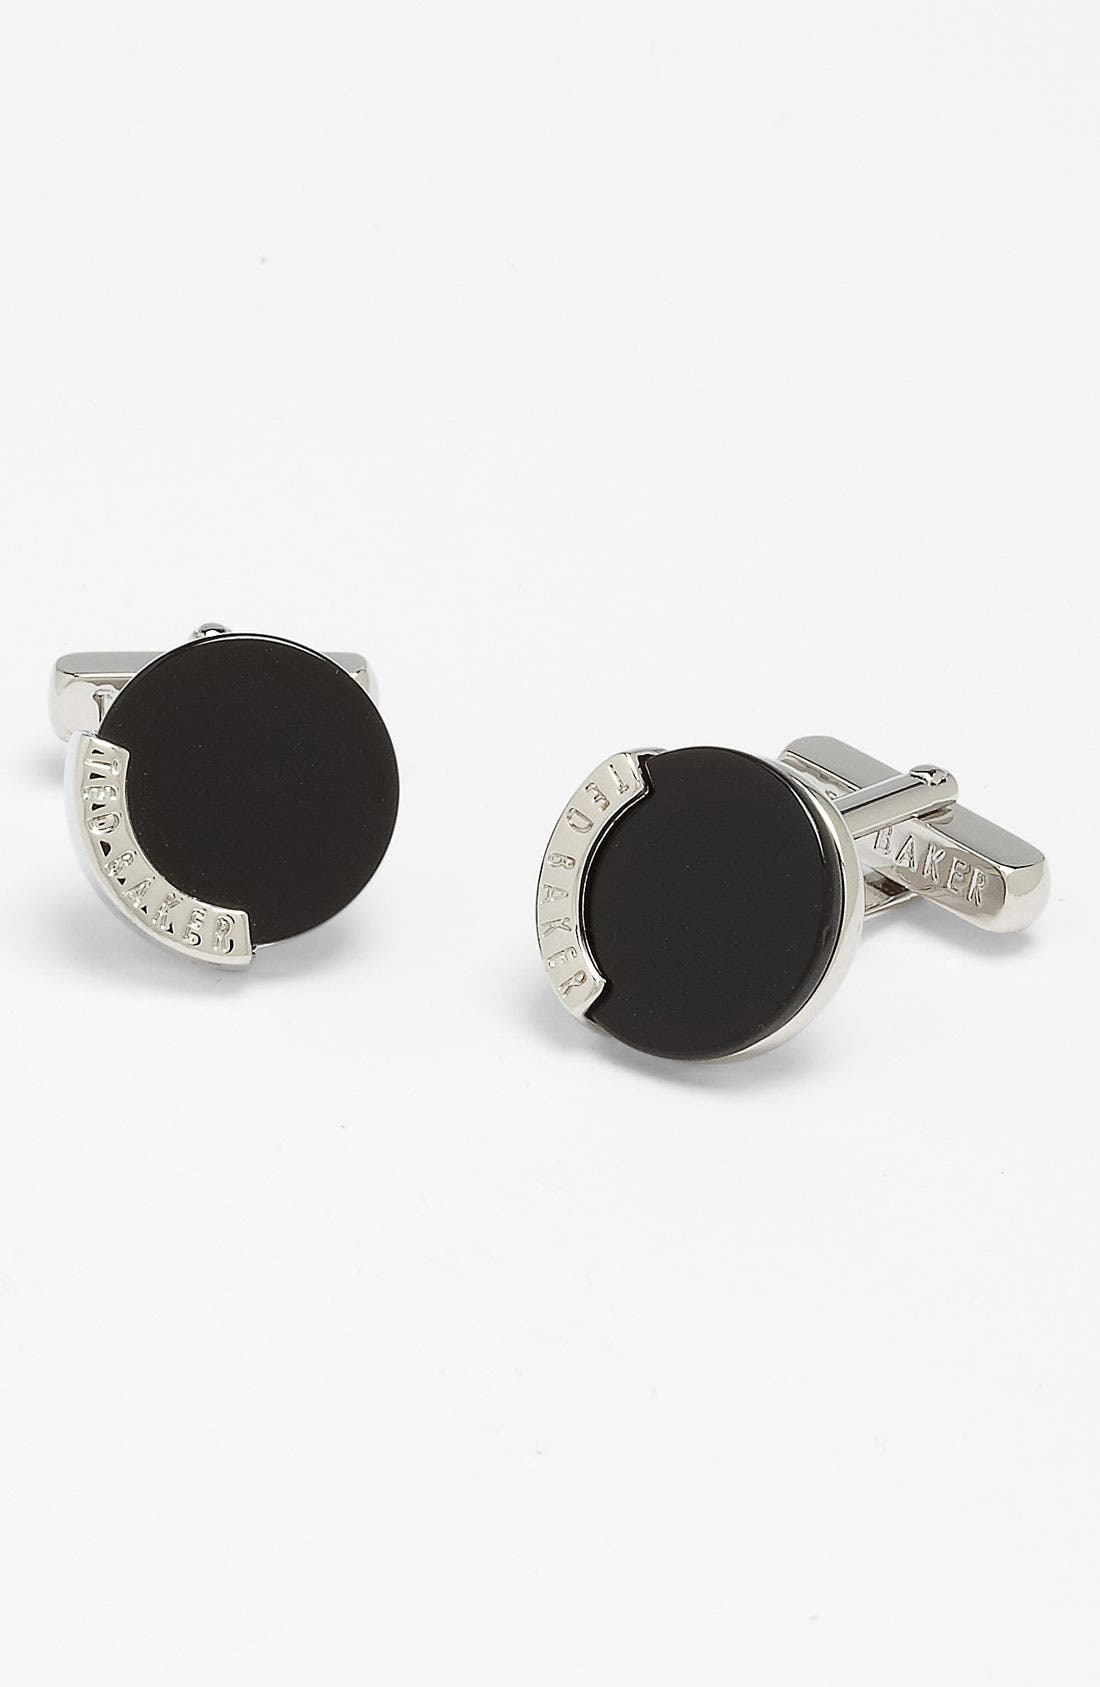 Alternate Image 1 Selected - Ted Baker London 'Galaxx' Cuff Links